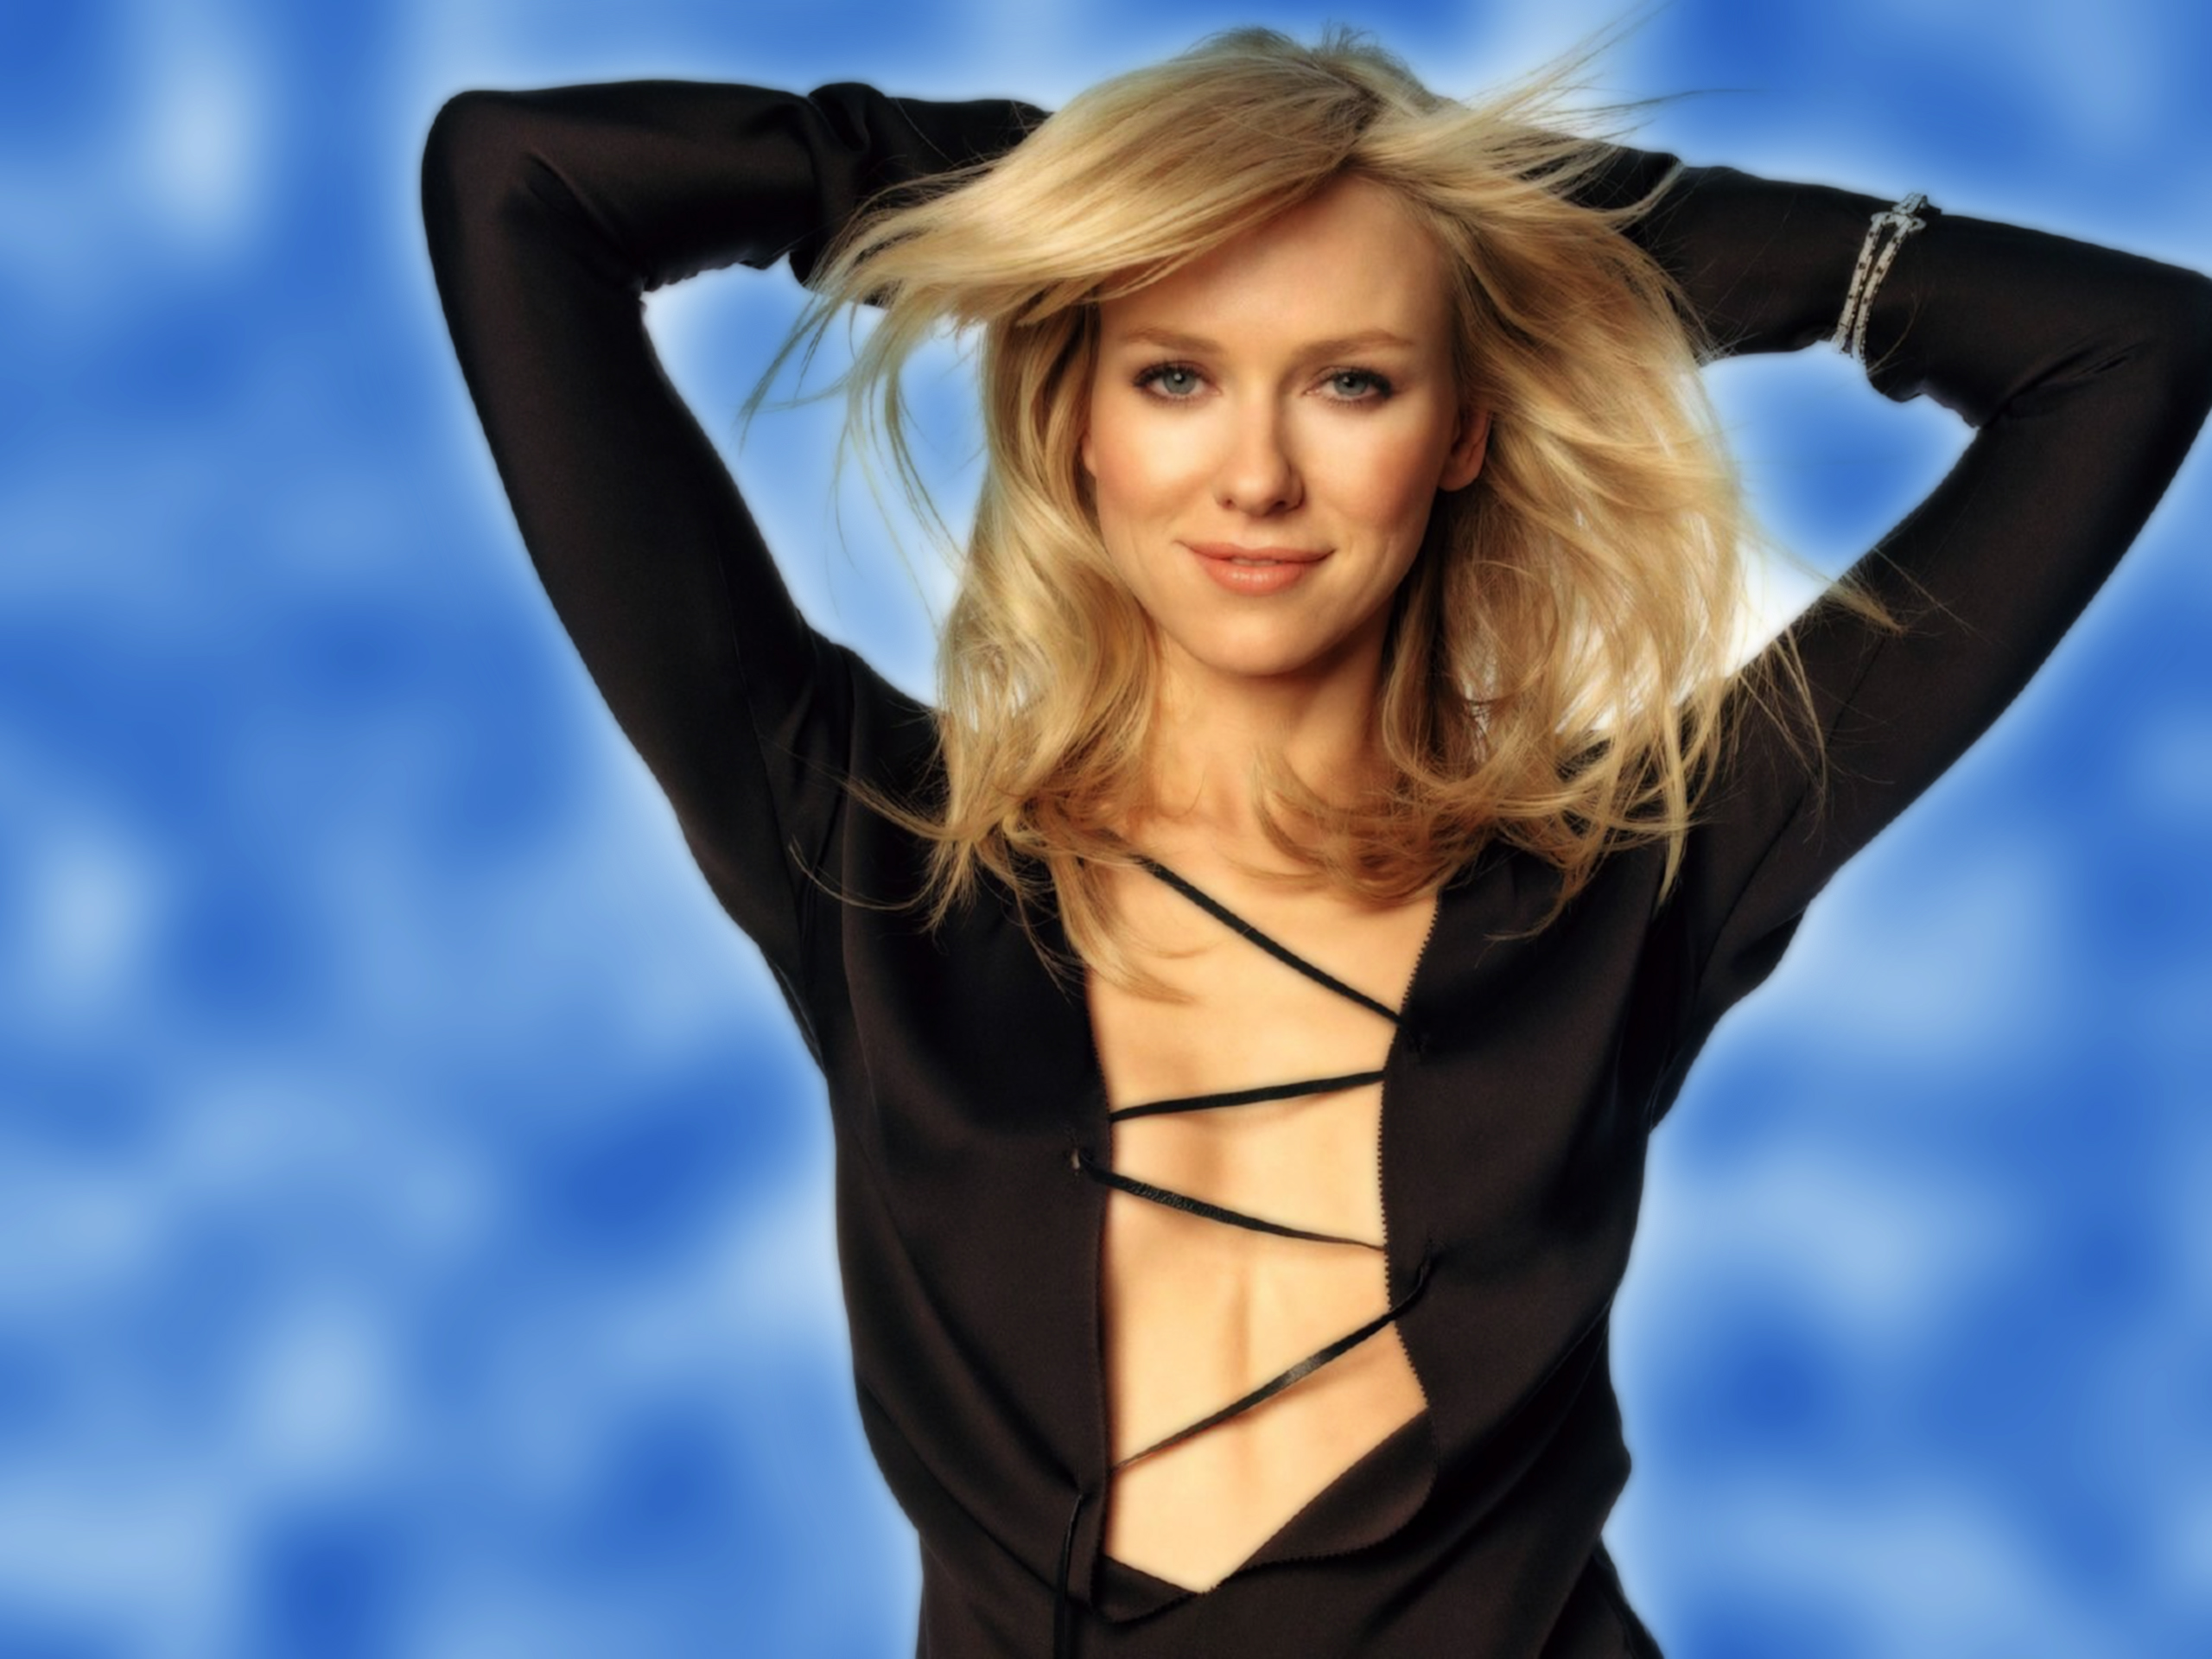 Naomi Watts Wallpapers Hd Collection For Download 2560x1920